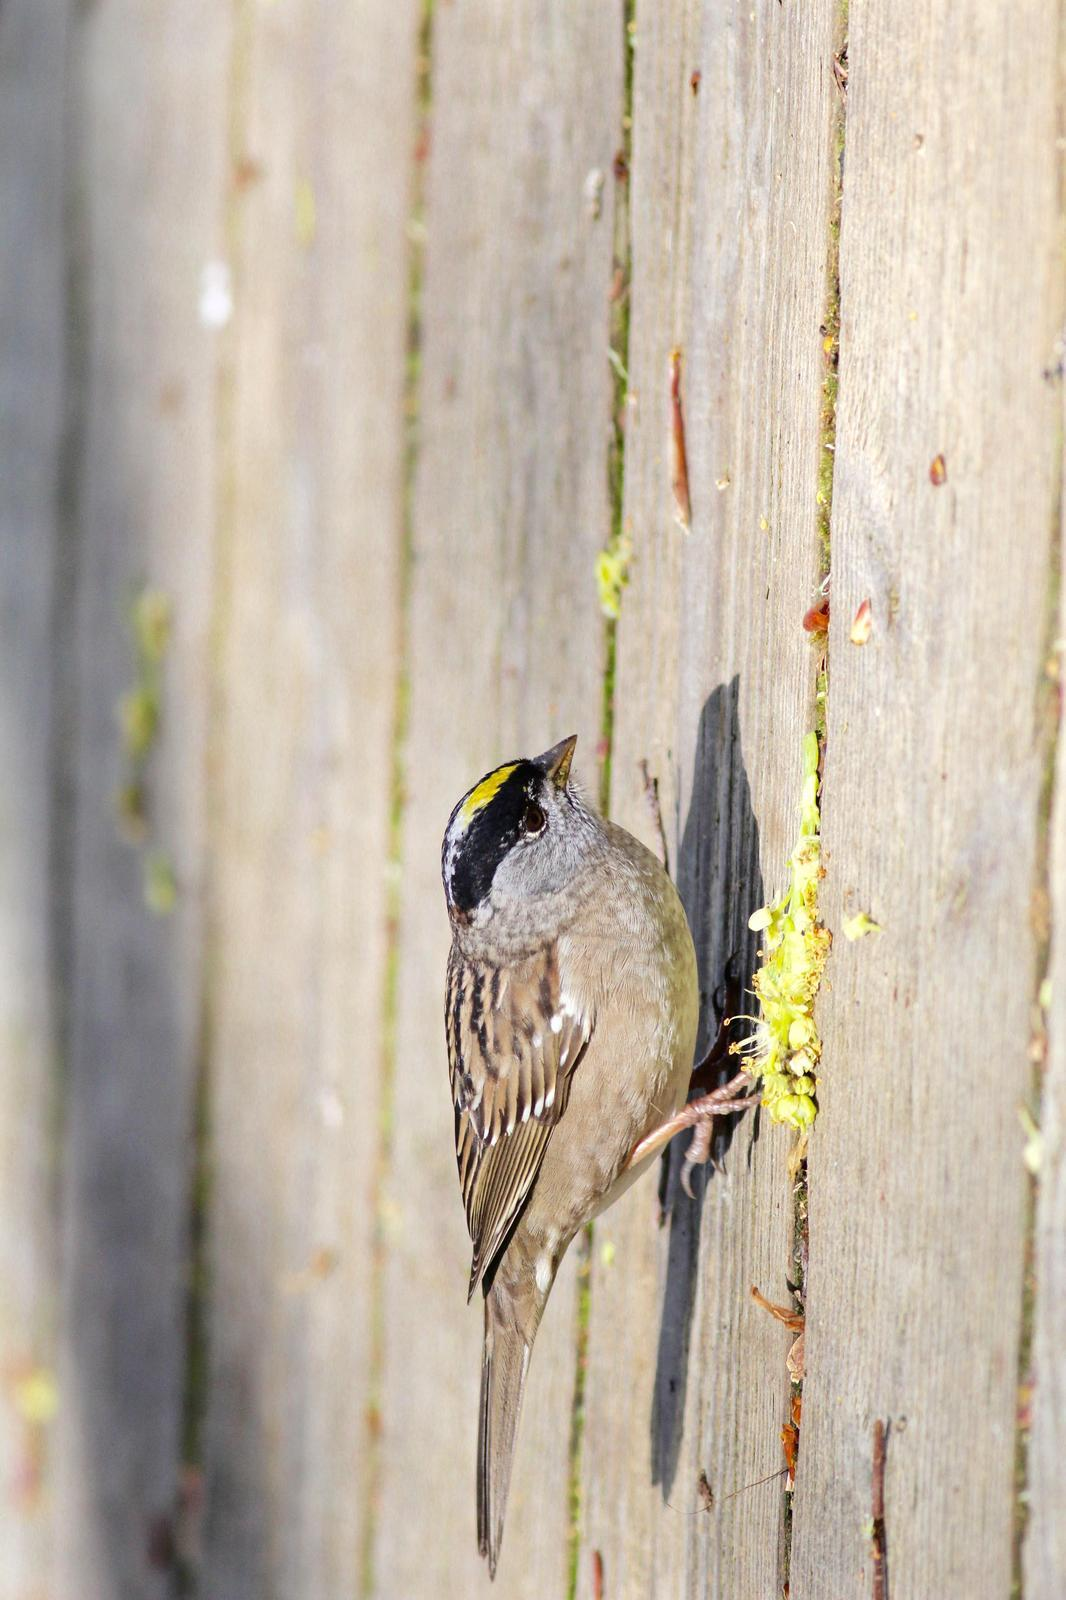 Golden-crowned Sparrow Photo by Kathryn Keith